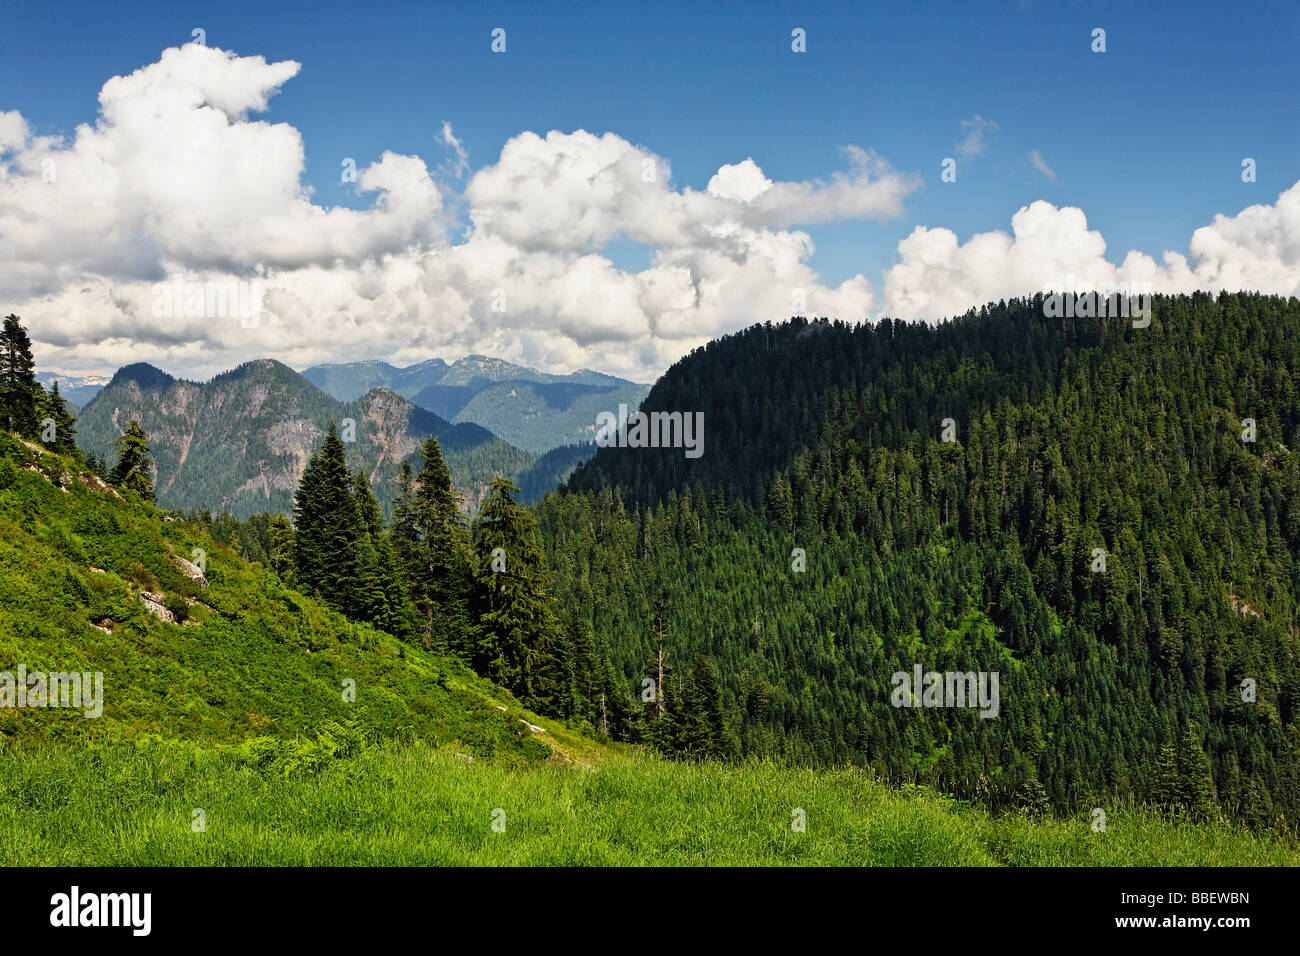 Surrounding mountain landscapes are stunning around Grouse Mountain, Vancouver British Columbia Canada - Stock Image